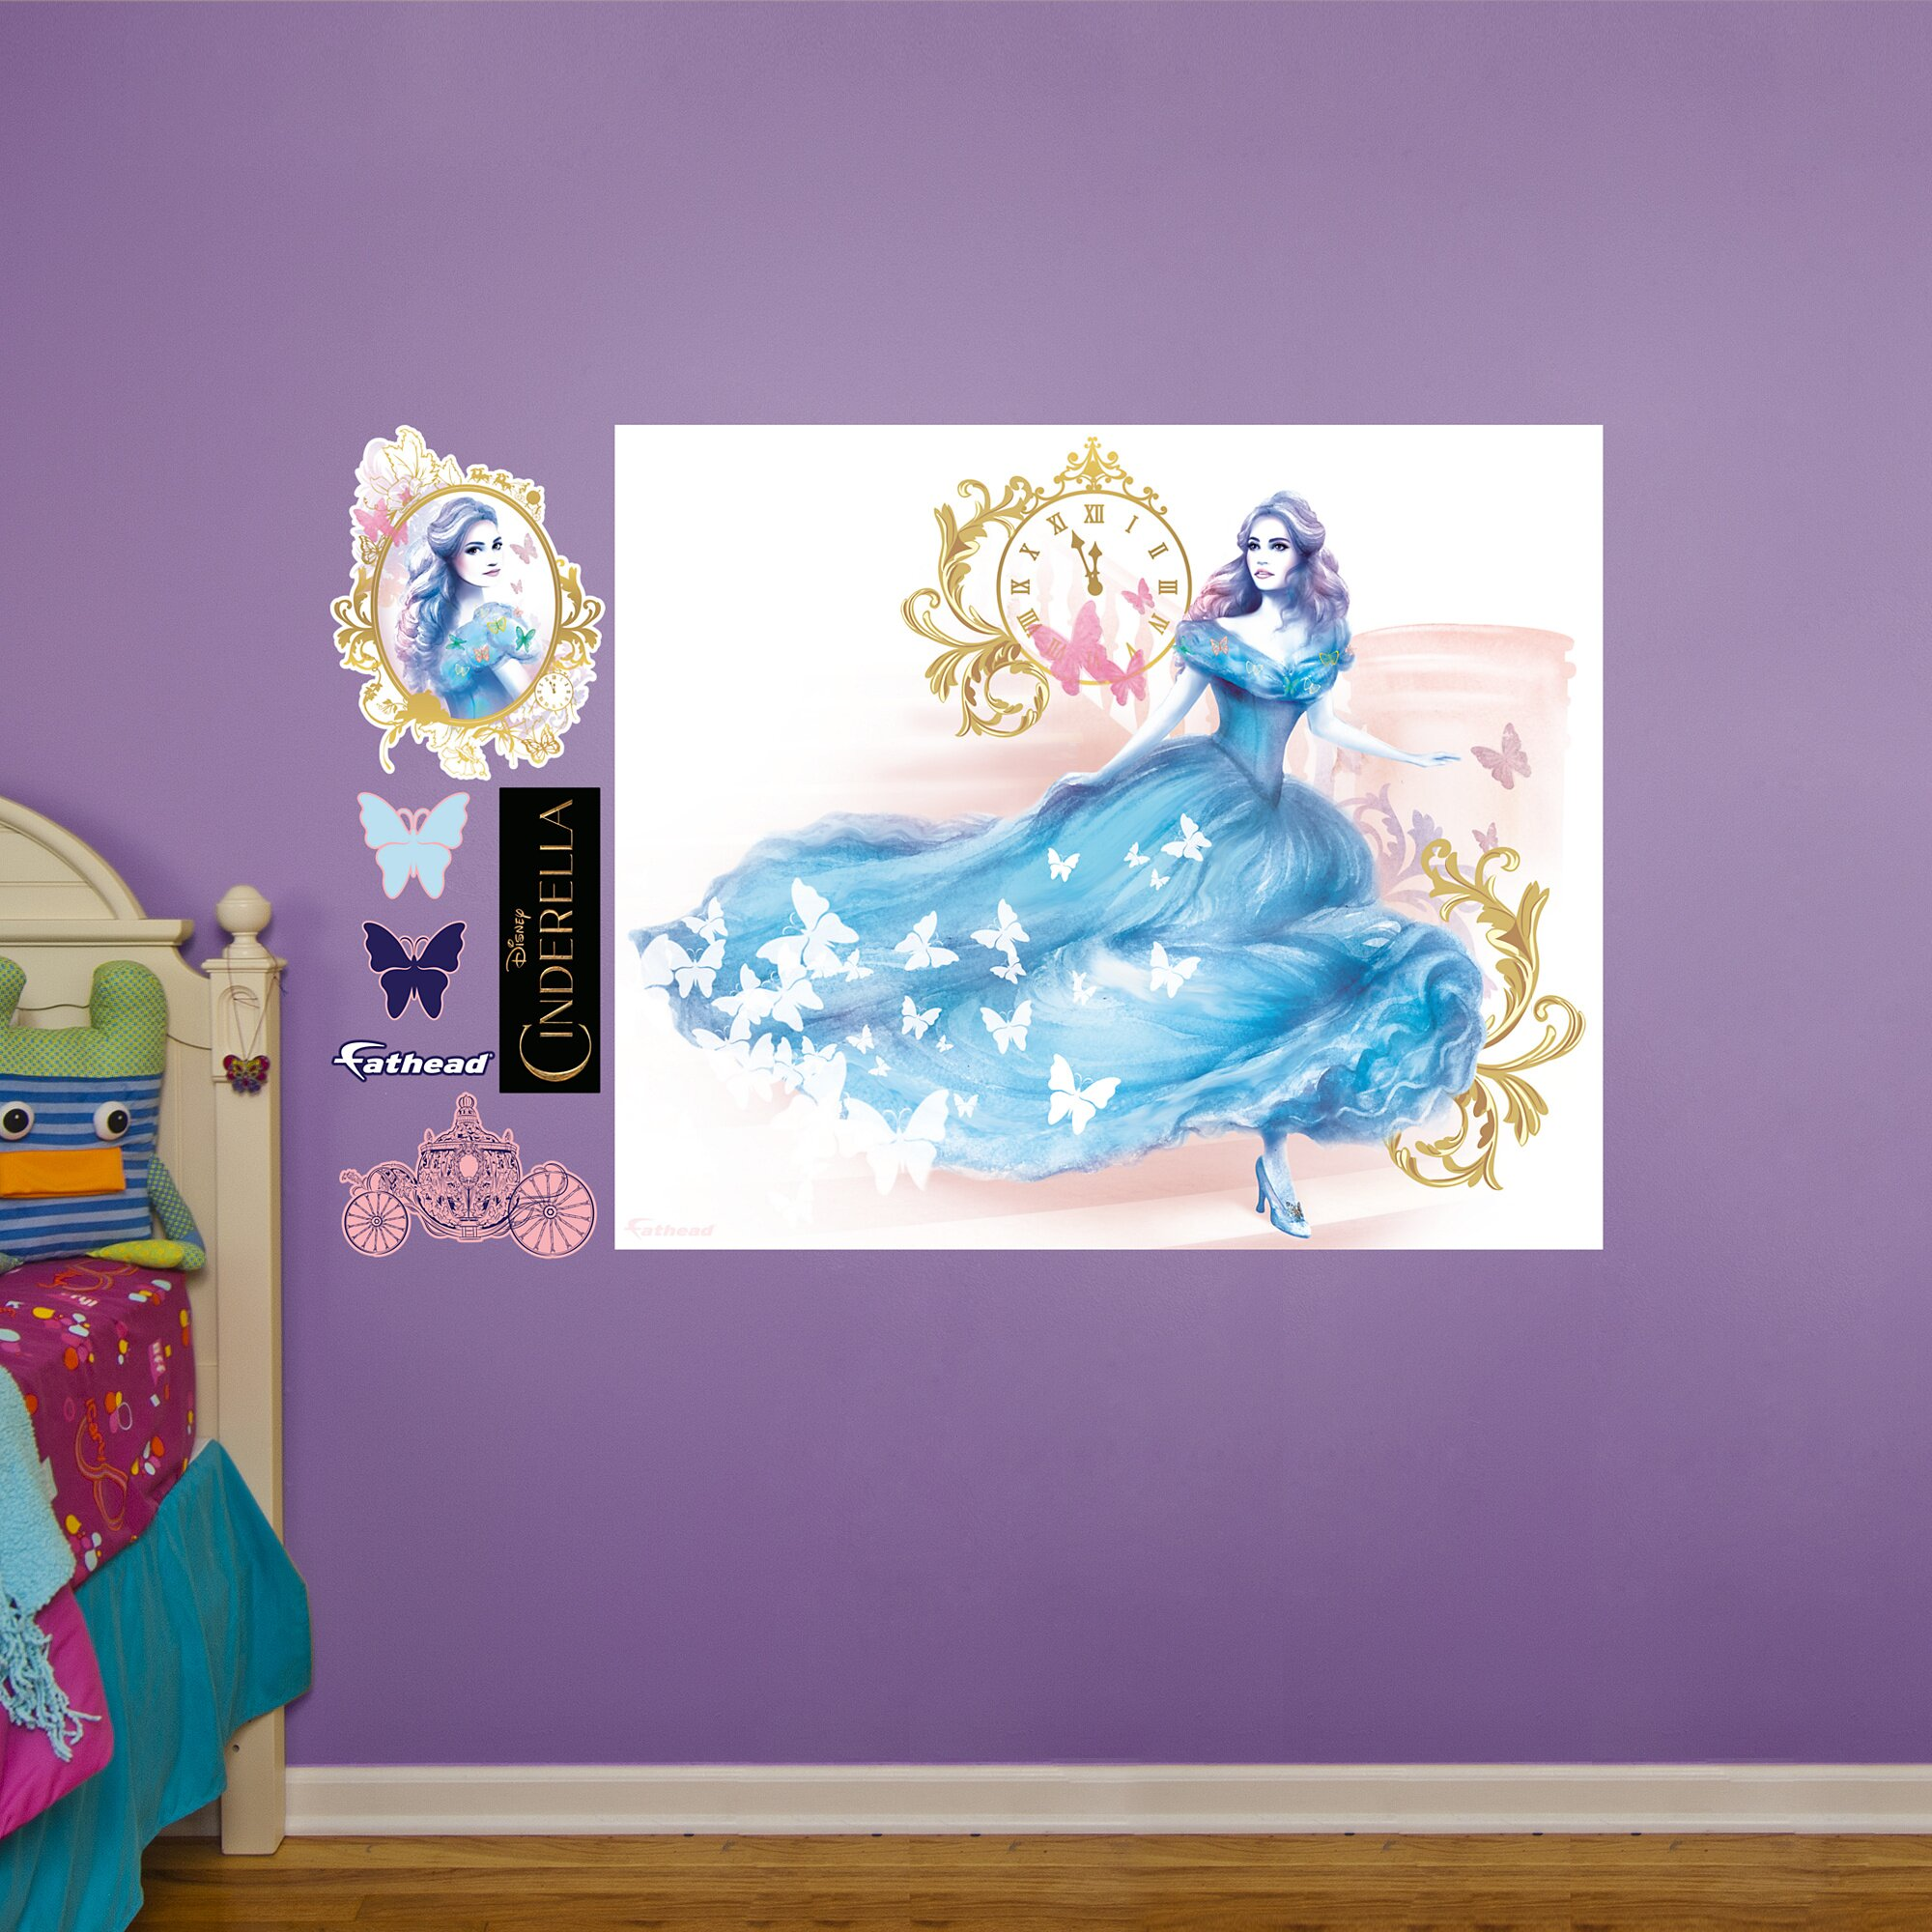 fathead disney cinderella movie peel and stick wall mural fathead disney pirates of the caribbean wall mural wayfair